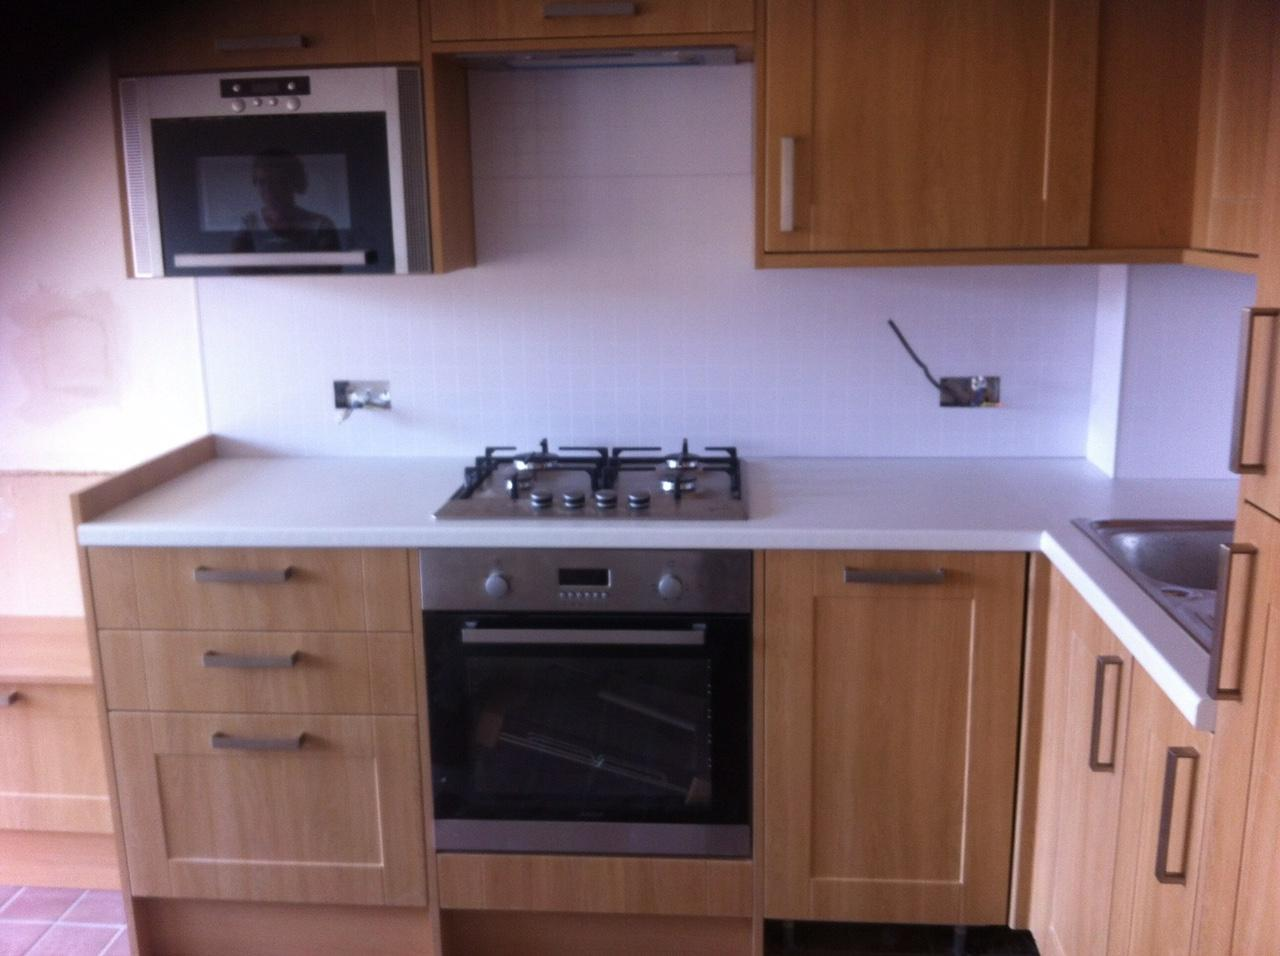 Kitchen Bathroom Solutions Kitchen Planners And Installers In Bishopbriggs Torrance G64 1rn